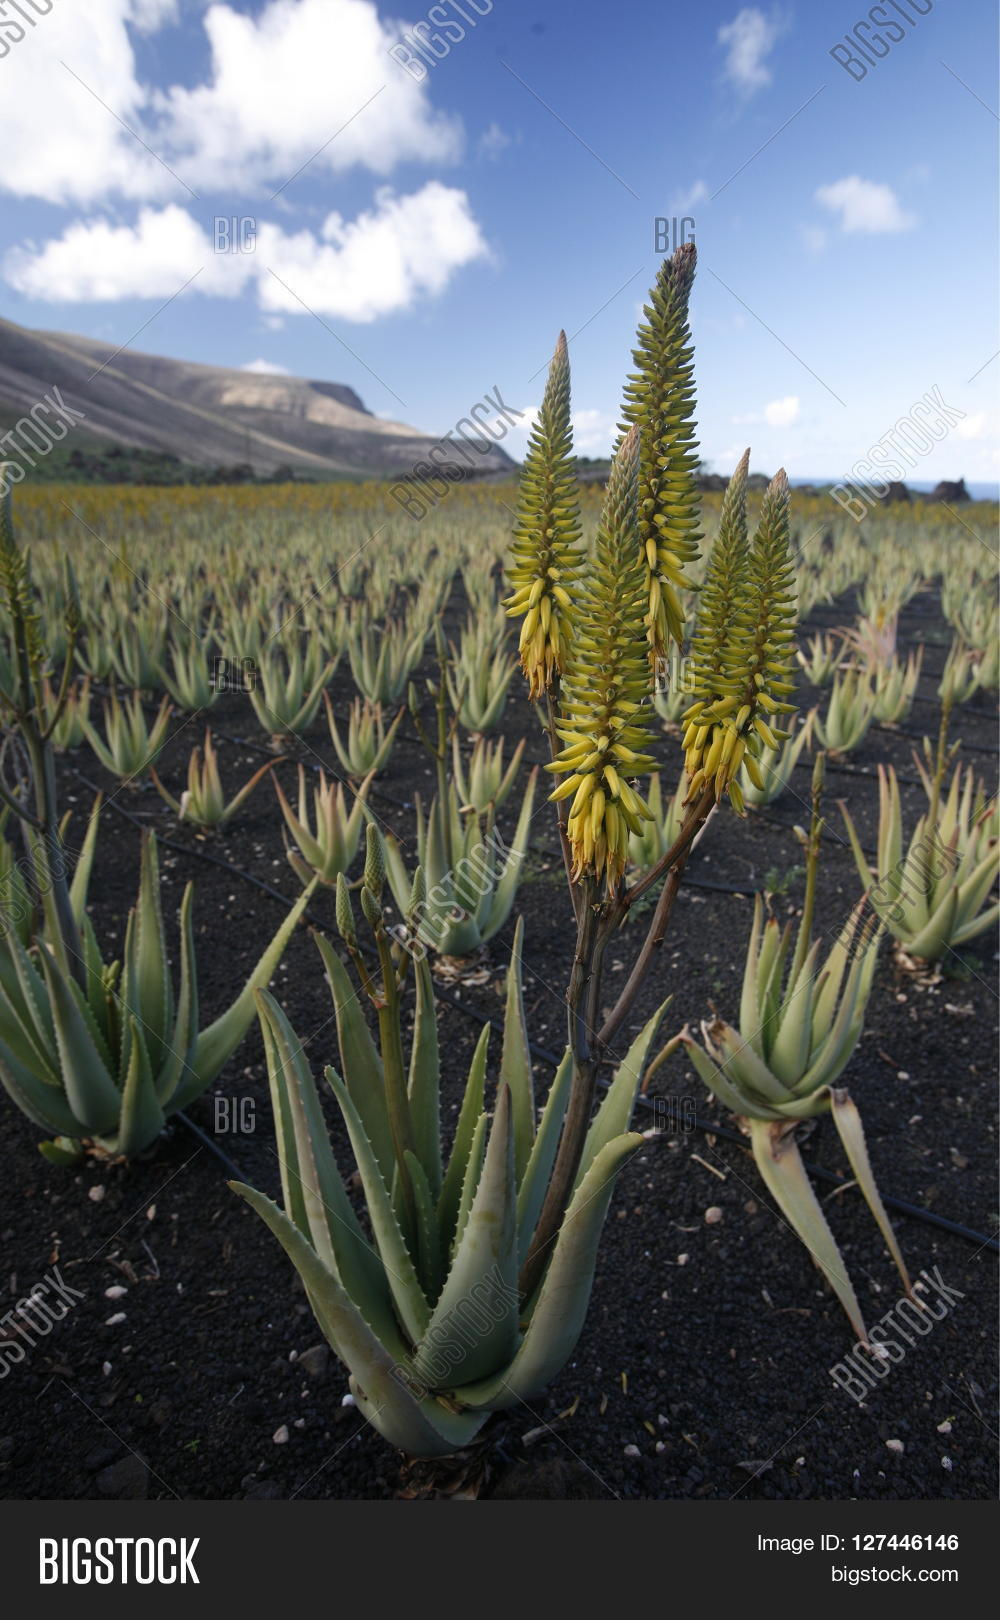 Aloe Vera Kaktus Europe Canary Islands Image Photo Free Trial Bigstock